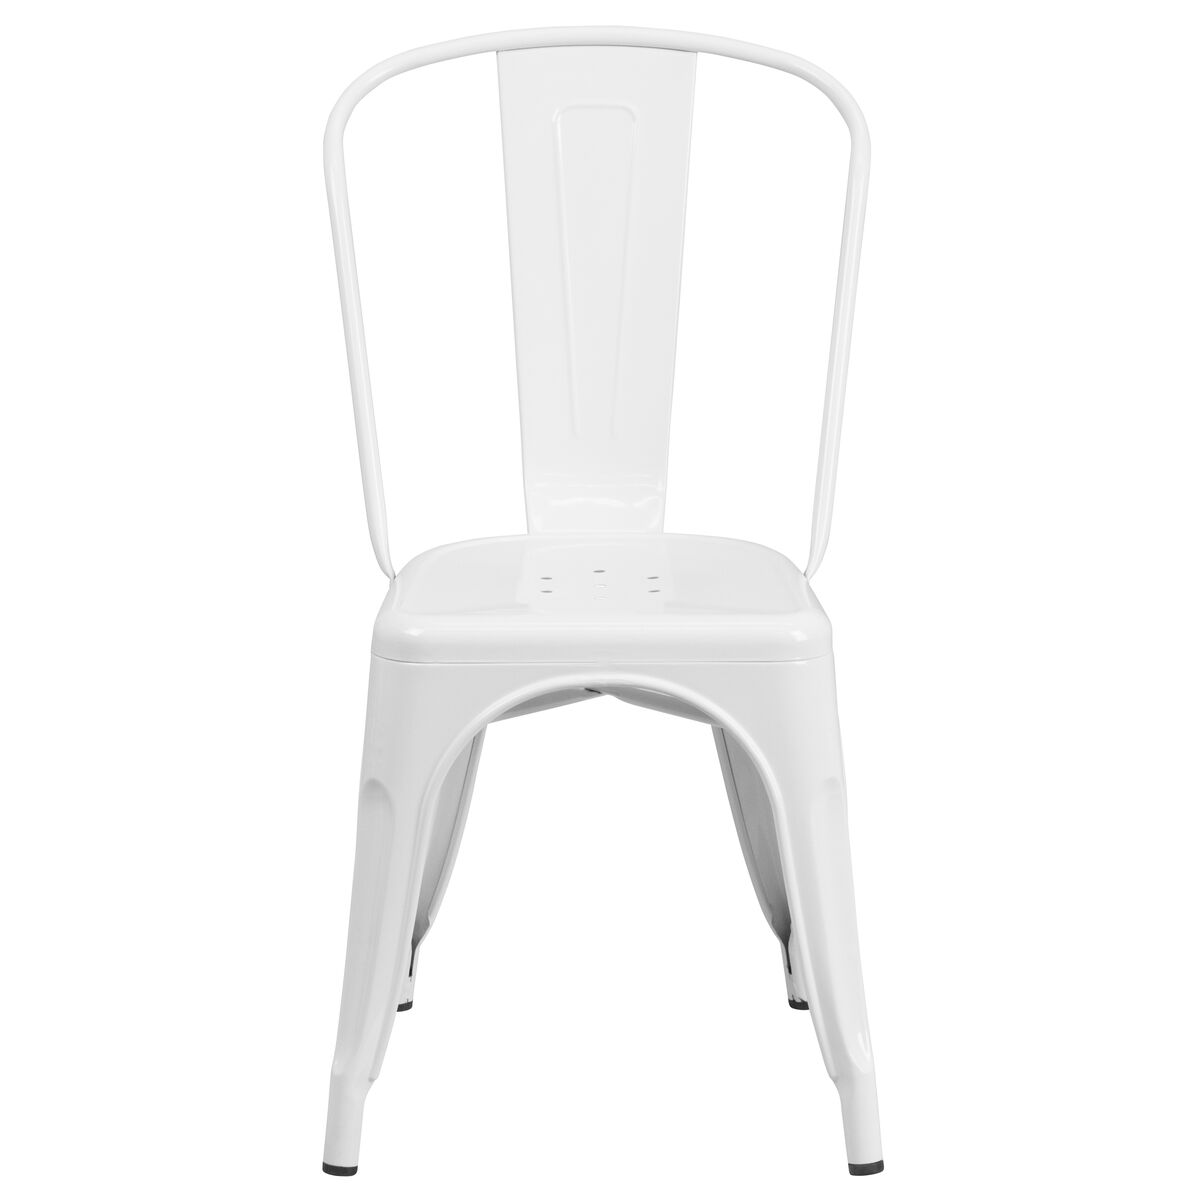 Prime White Metal Indoor Outdoor Stackable Chair Unemploymentrelief Wooden Chair Designs For Living Room Unemploymentrelieforg